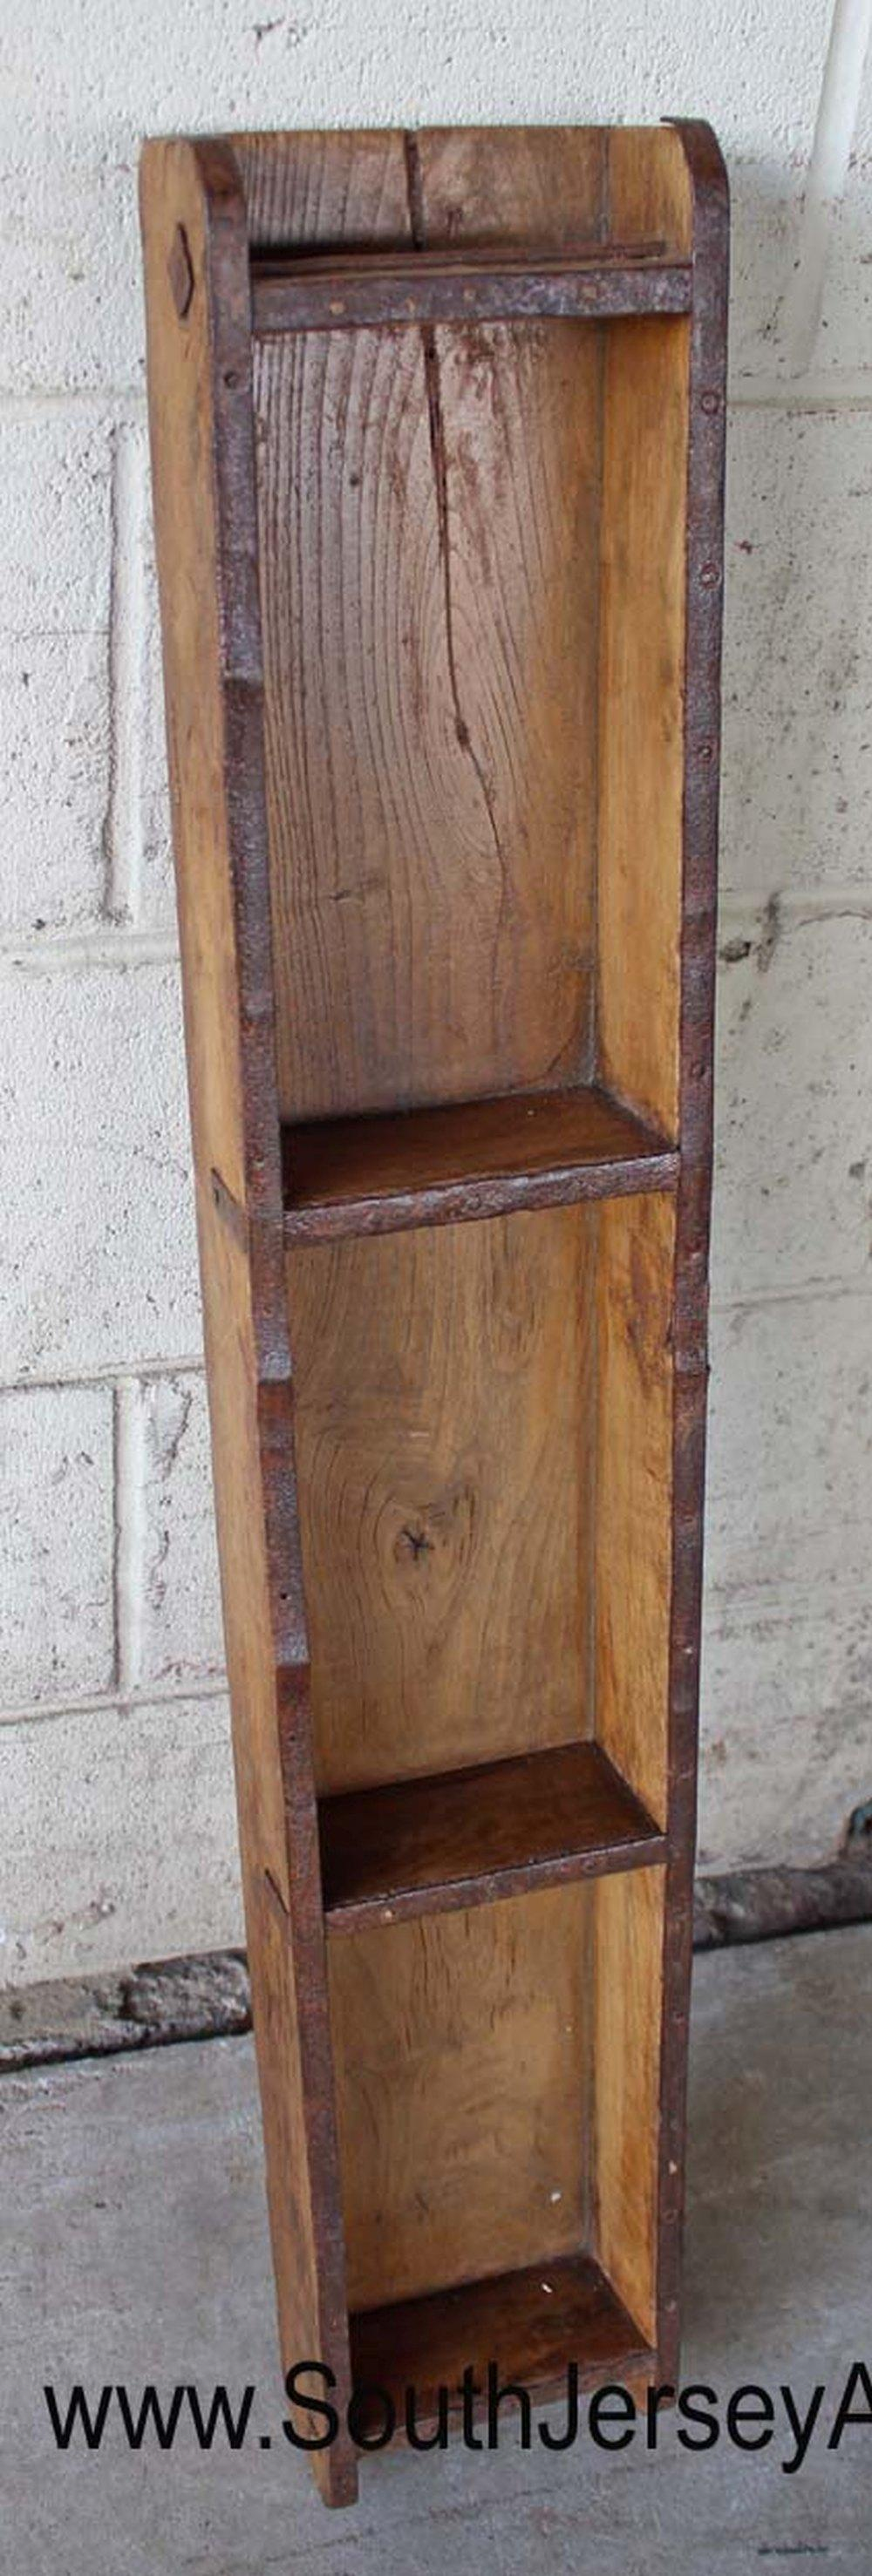 Antique Country Spice Rack